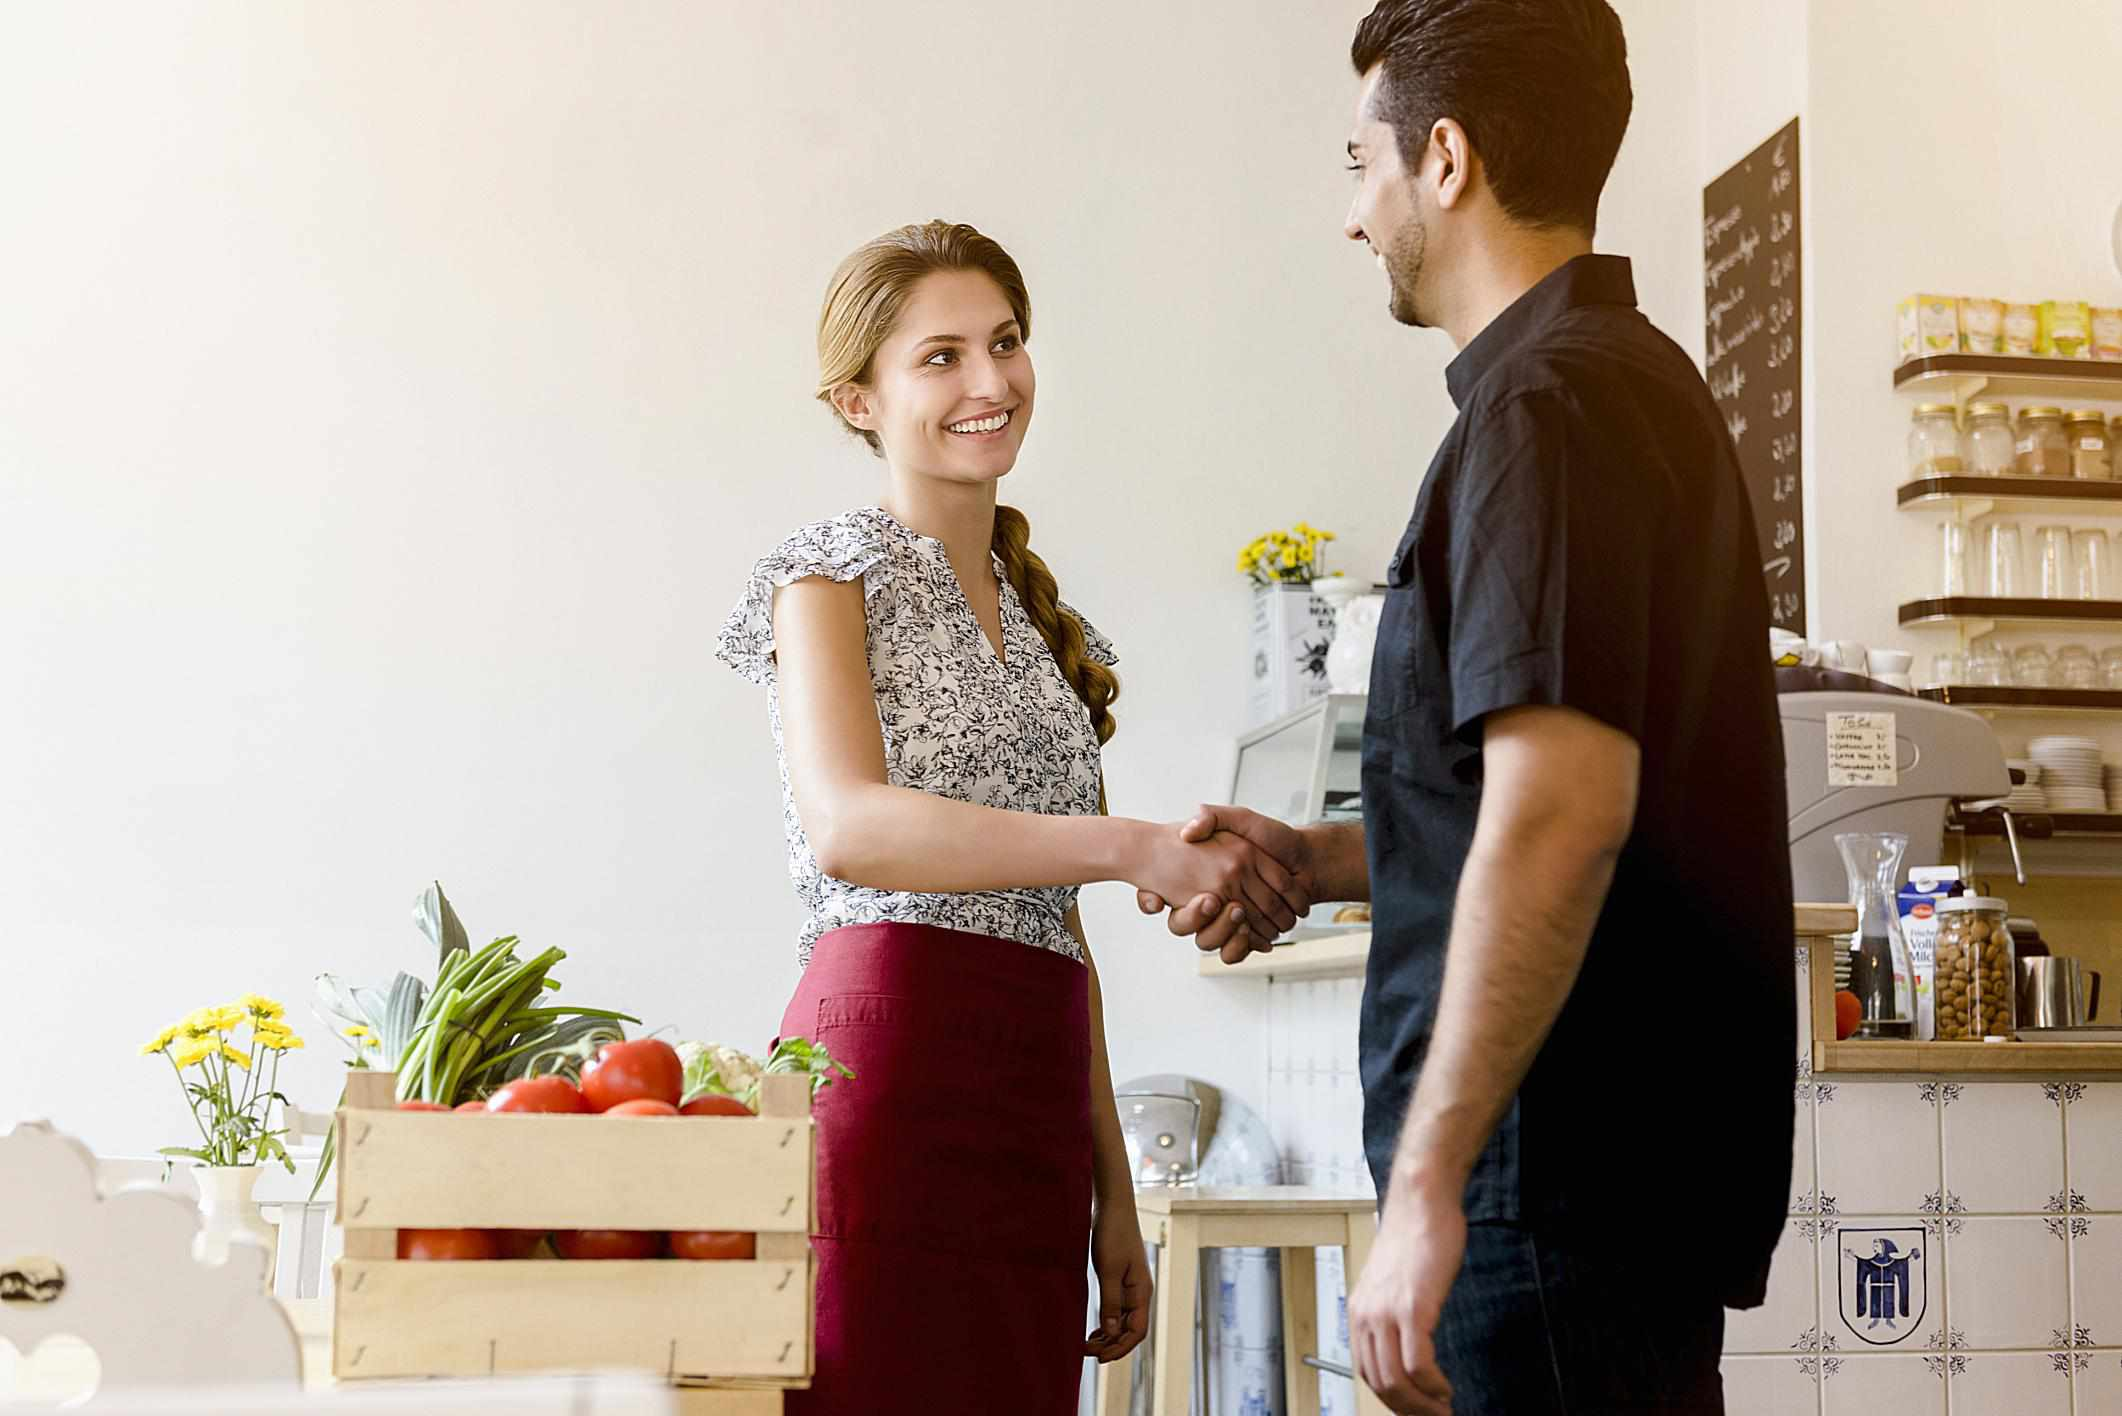 A man and a woman shaking hands in a cafe.